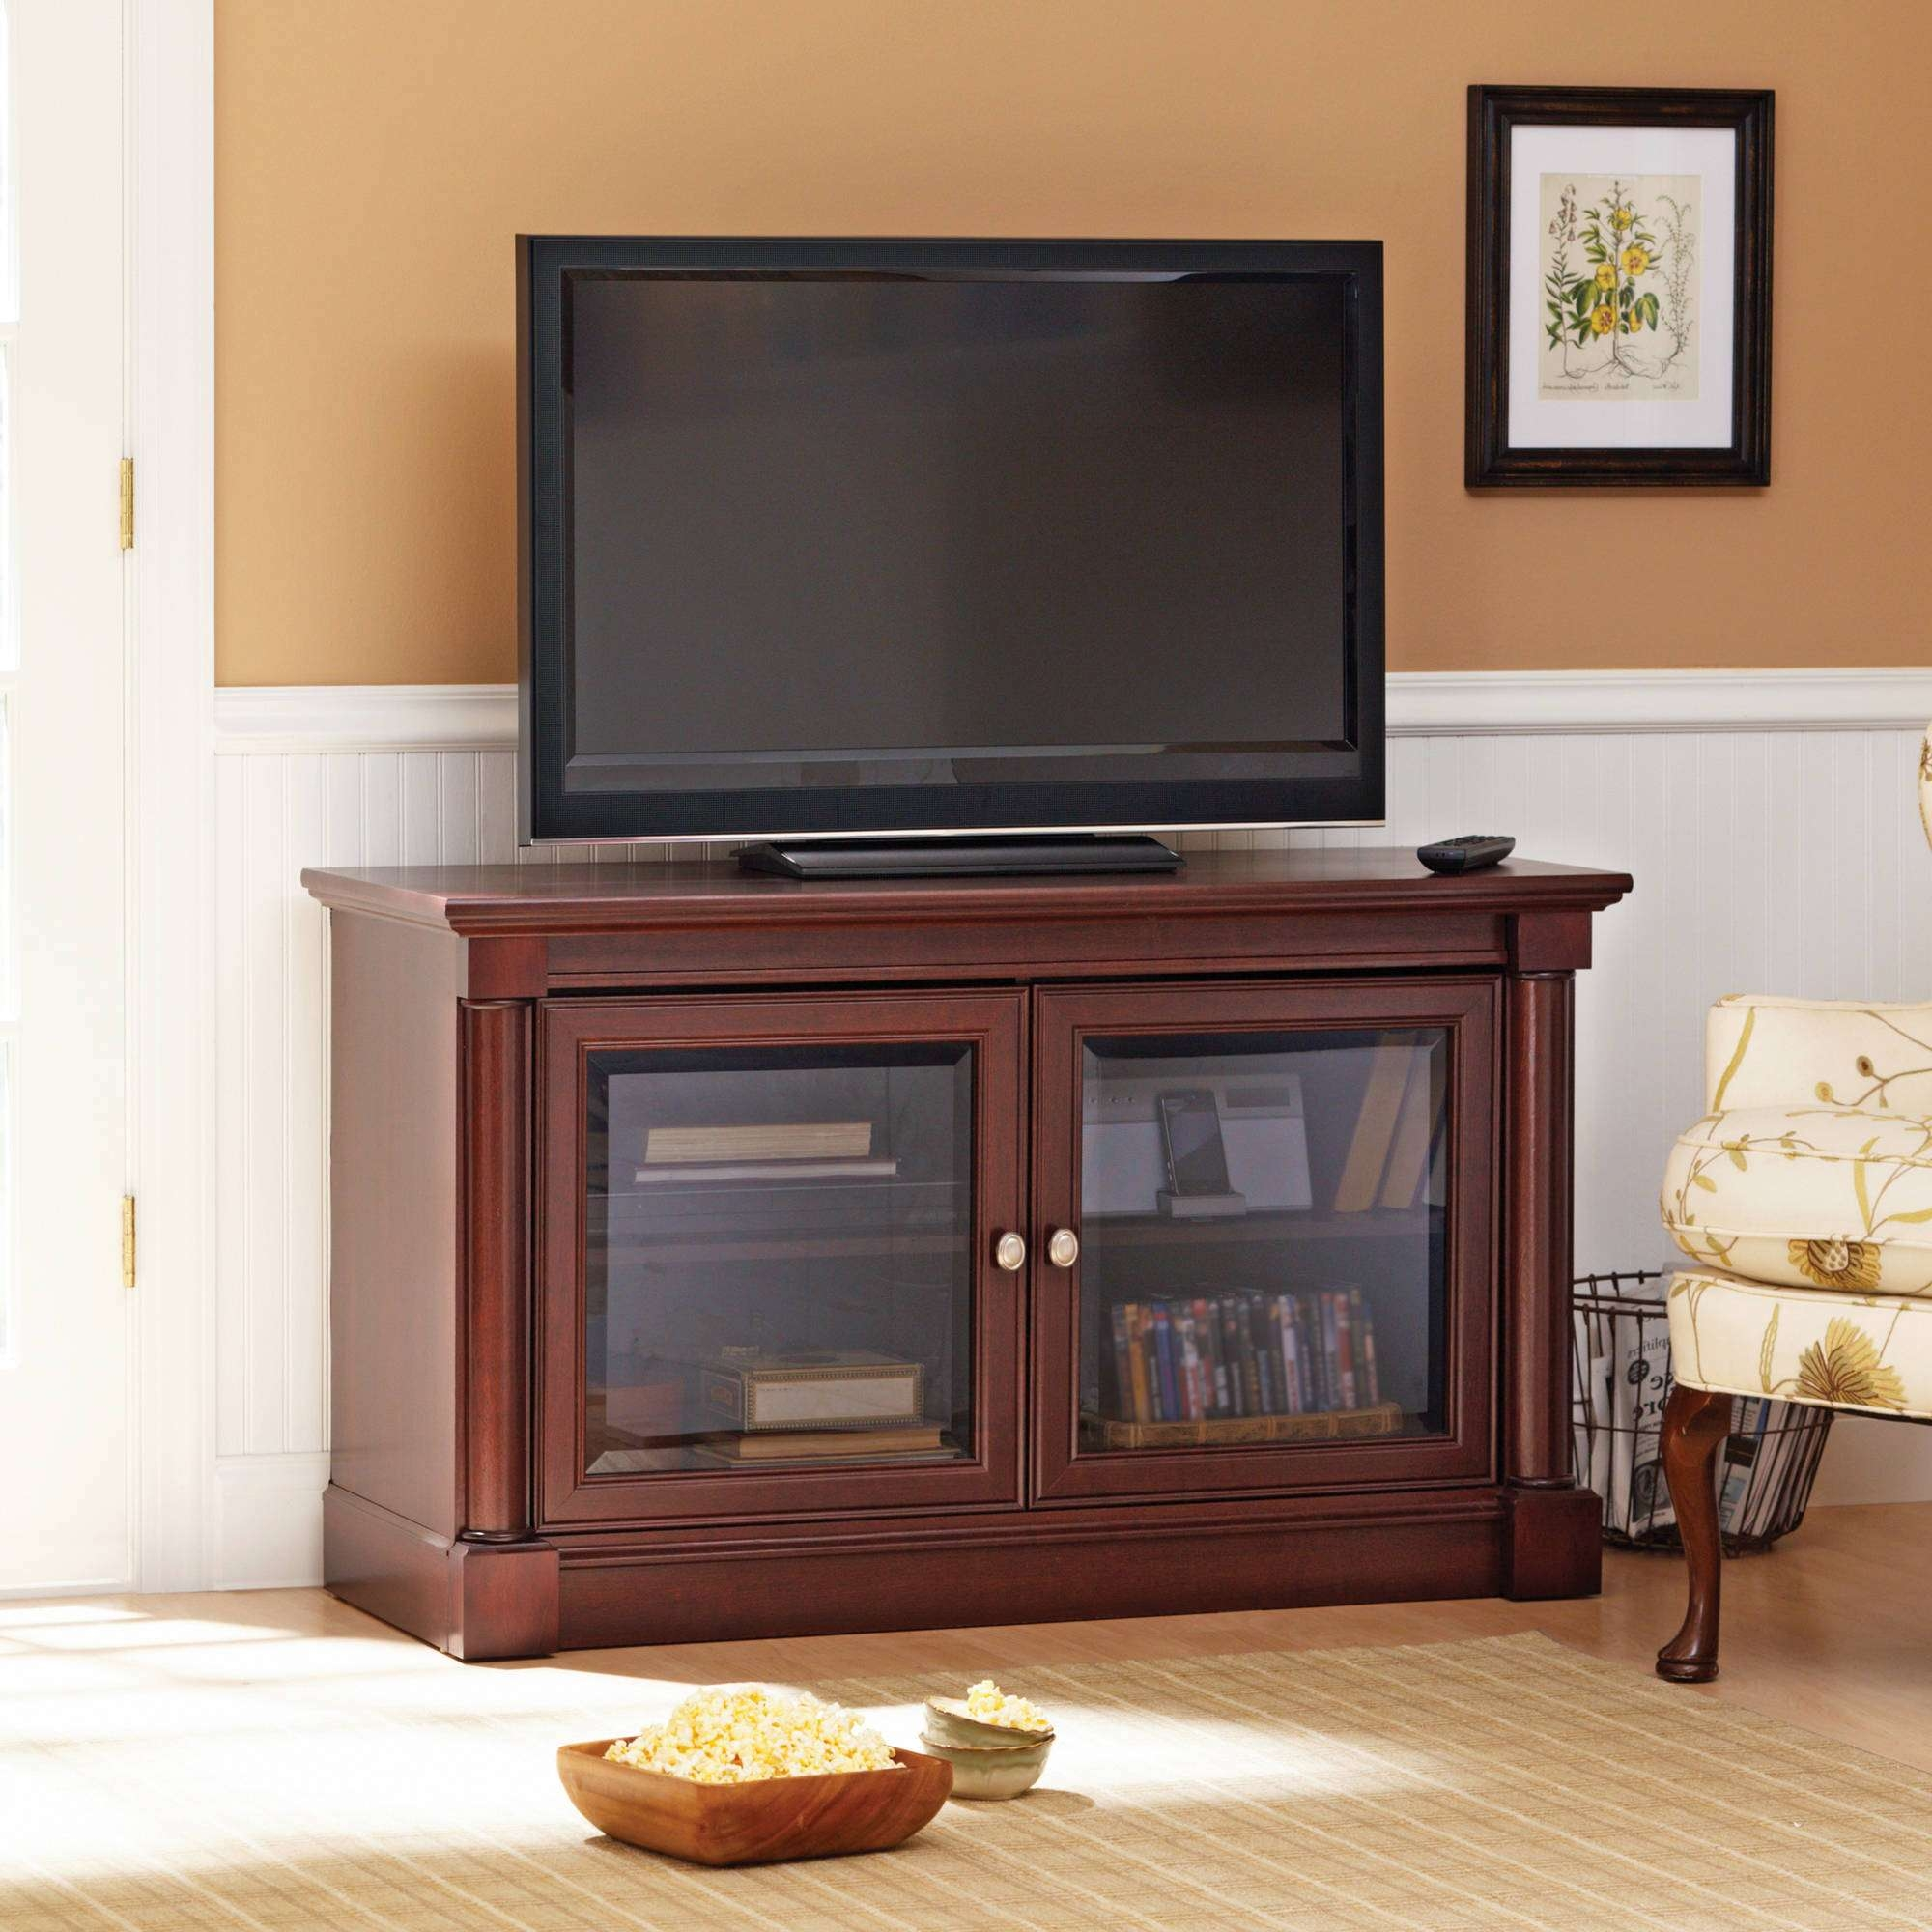 Better Homes And Gardens Ashwood Road Cherry Tv Stand, For Tvs Up Inside Cherry Tv Stands (View 4 of 15)